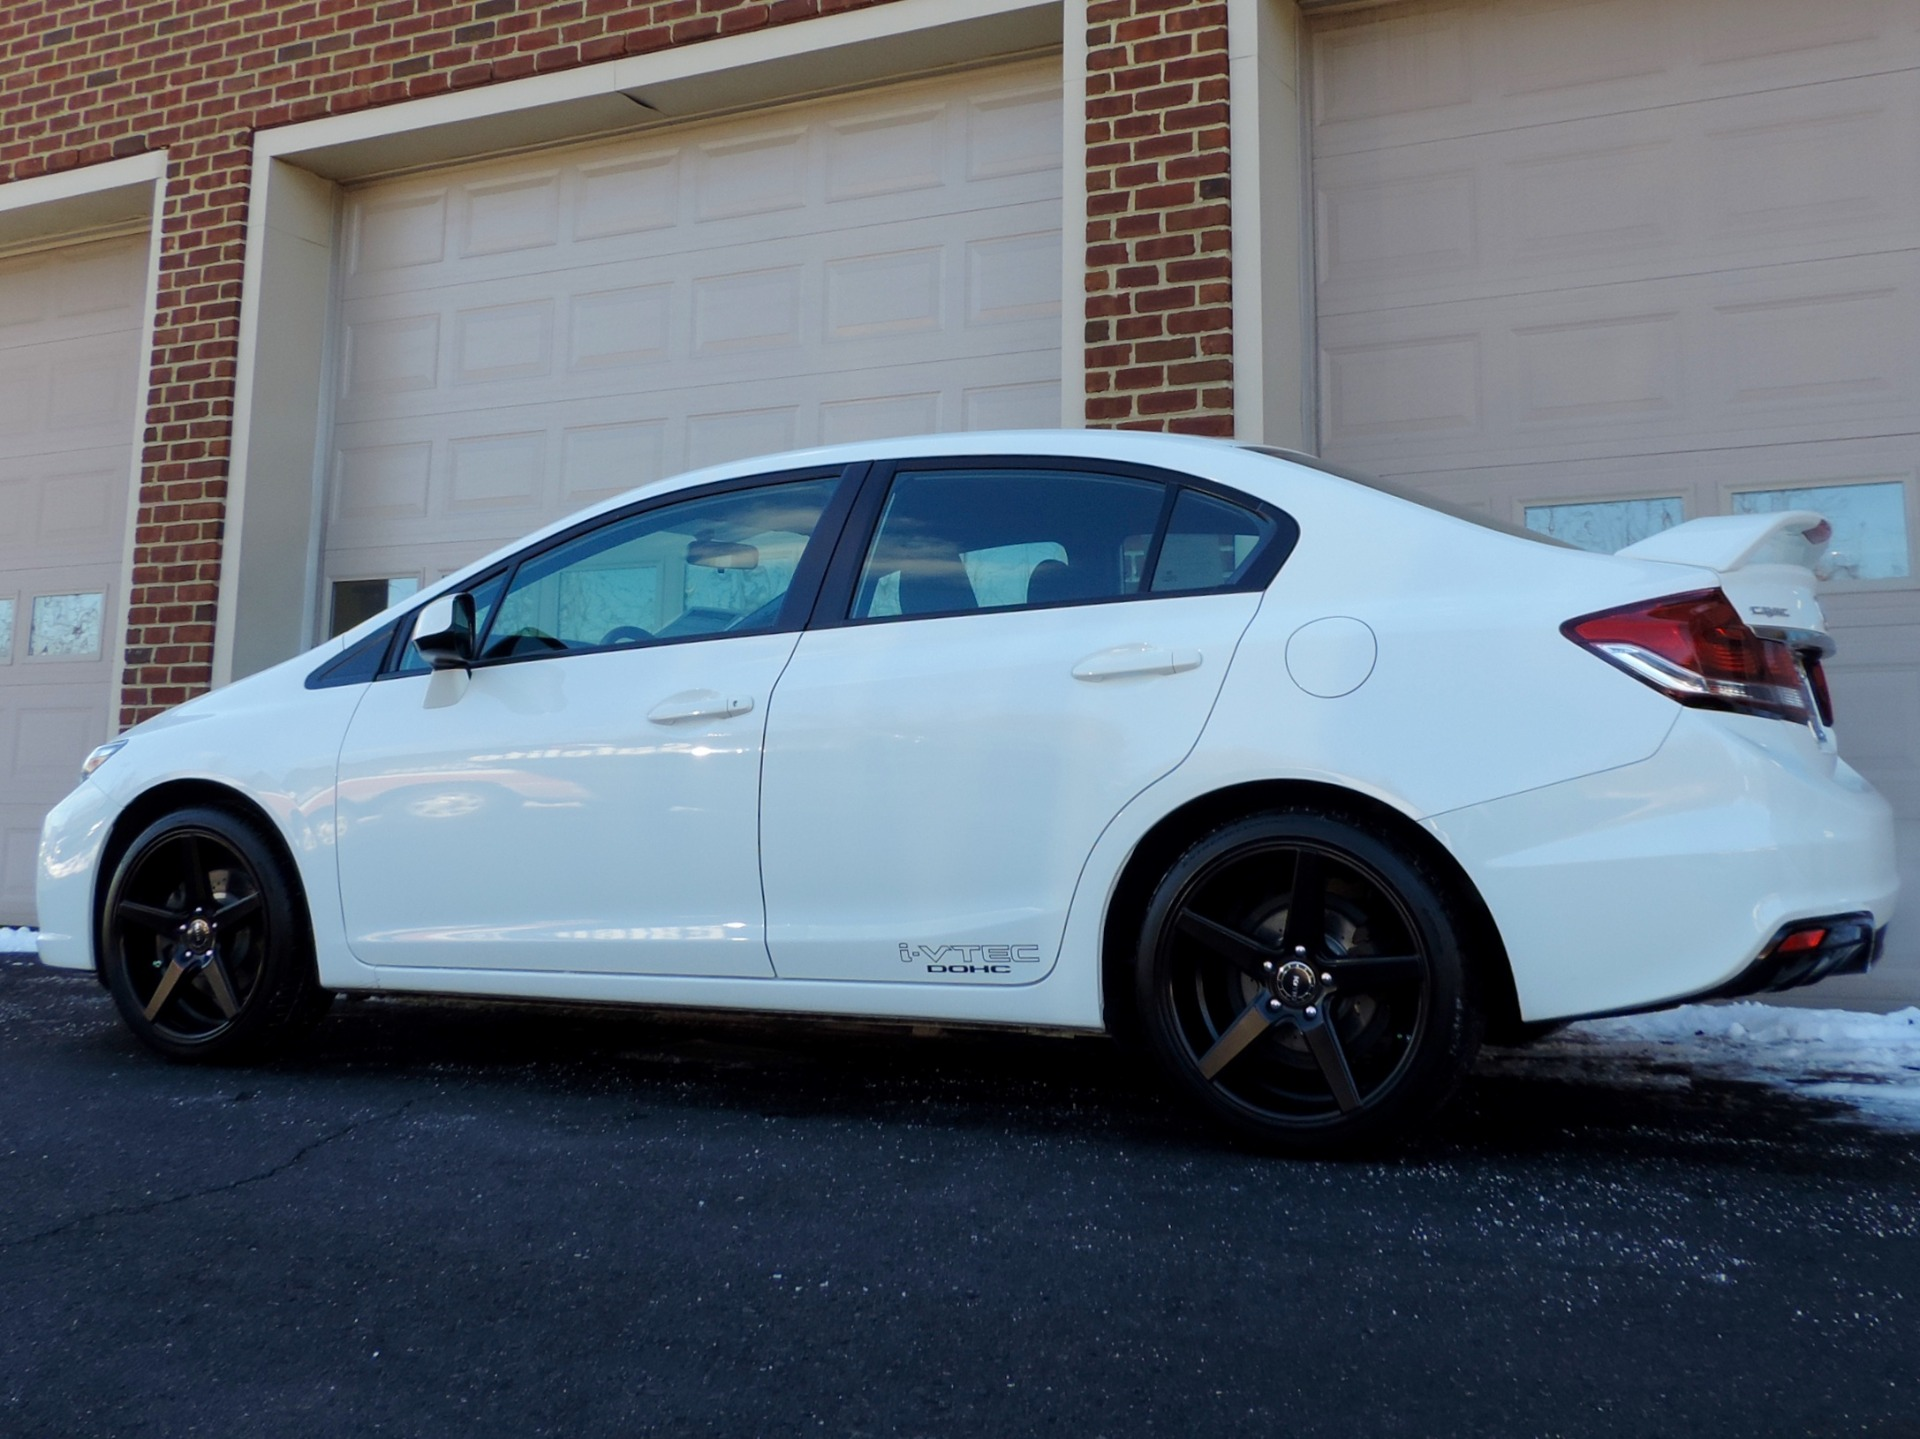 2013 honda civic si stock 707804 for sale near edgewater for Honda civic dealership